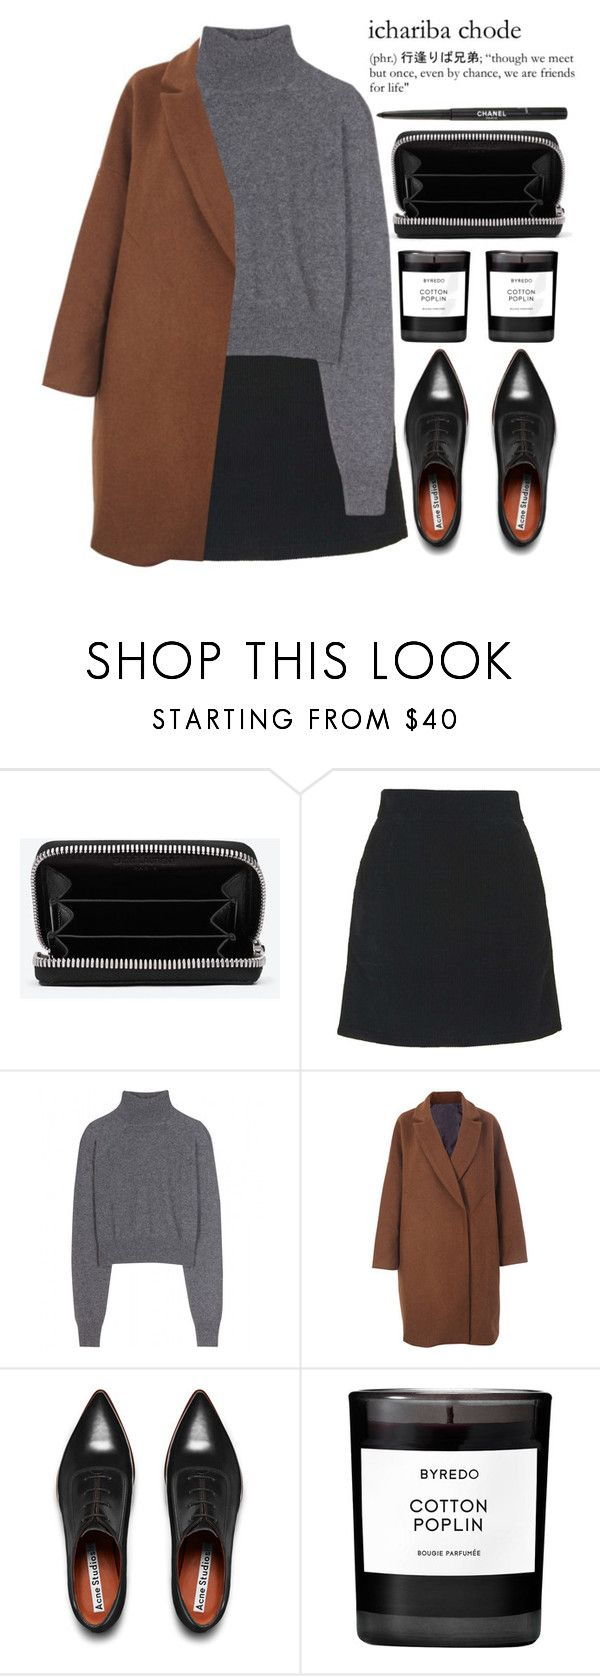 """""""ichariba chode"""" by evangeline-lily ❤ liked on Polyvore featuring moda, Yves Saint Laurent, Topshop, T By Alexander Wang, Acne Studios, Byredo y Chanel"""